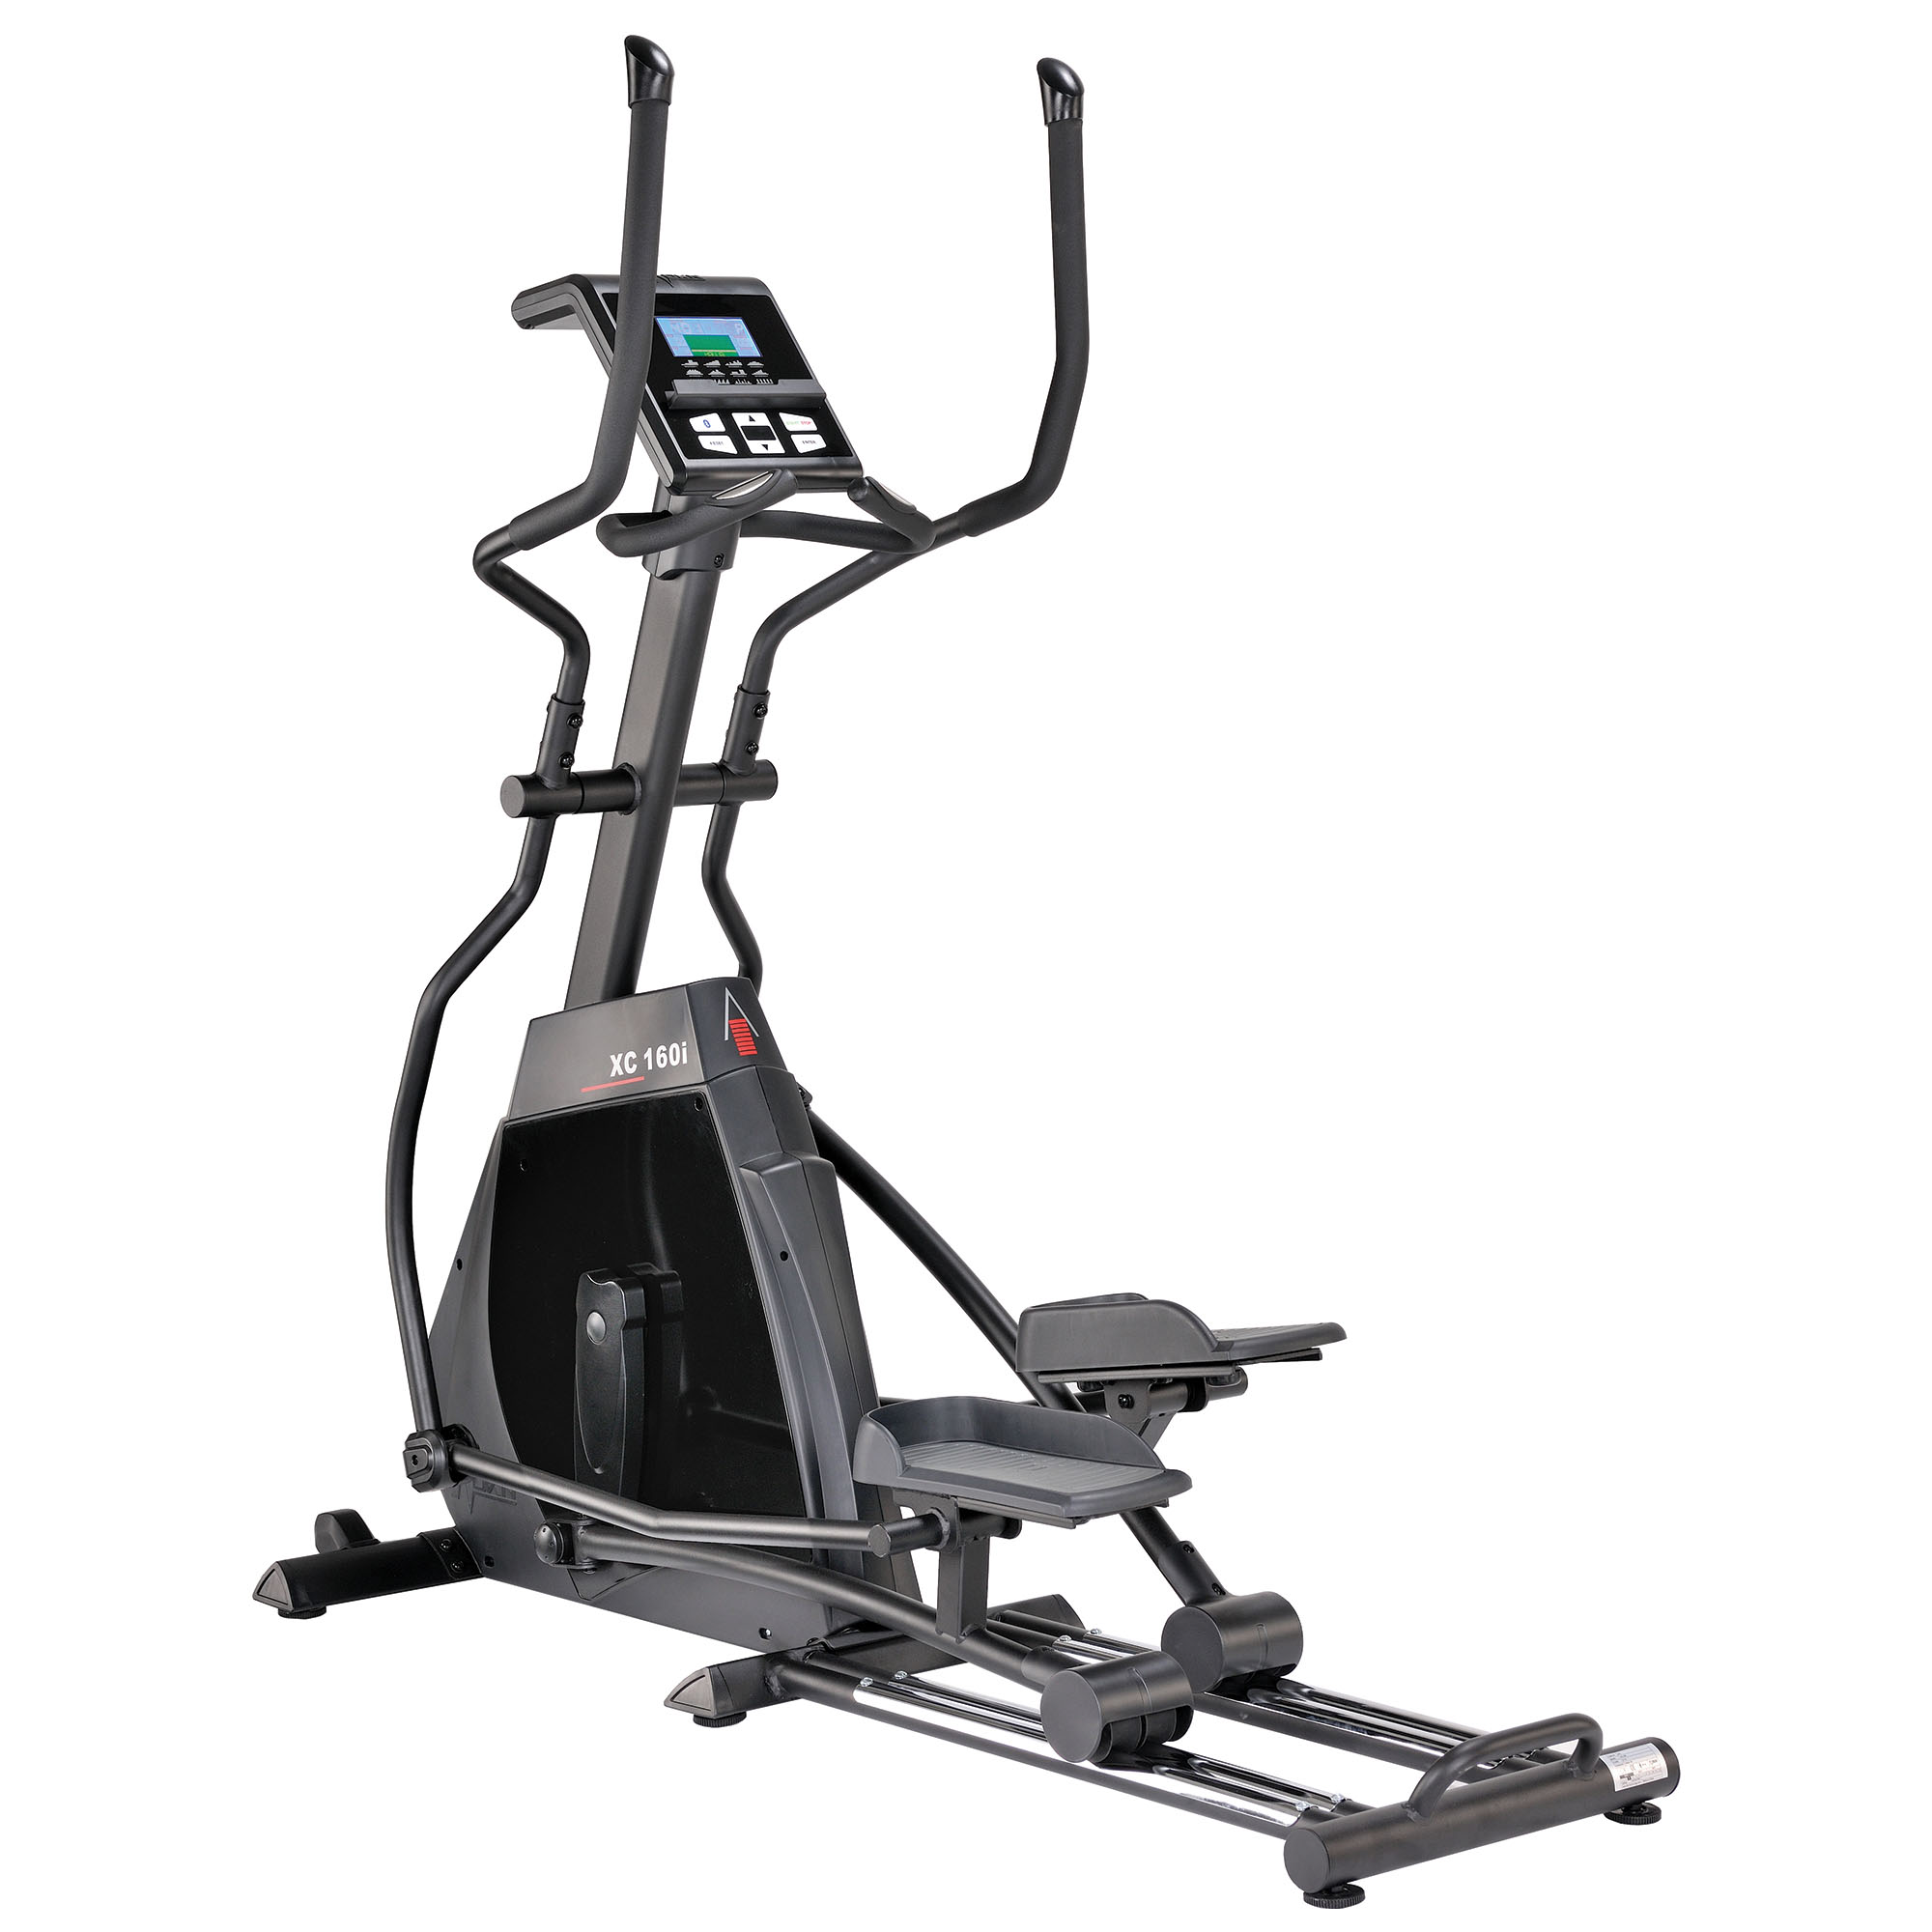 £774 - DKN XC-160i Elliptical Cross Trainer